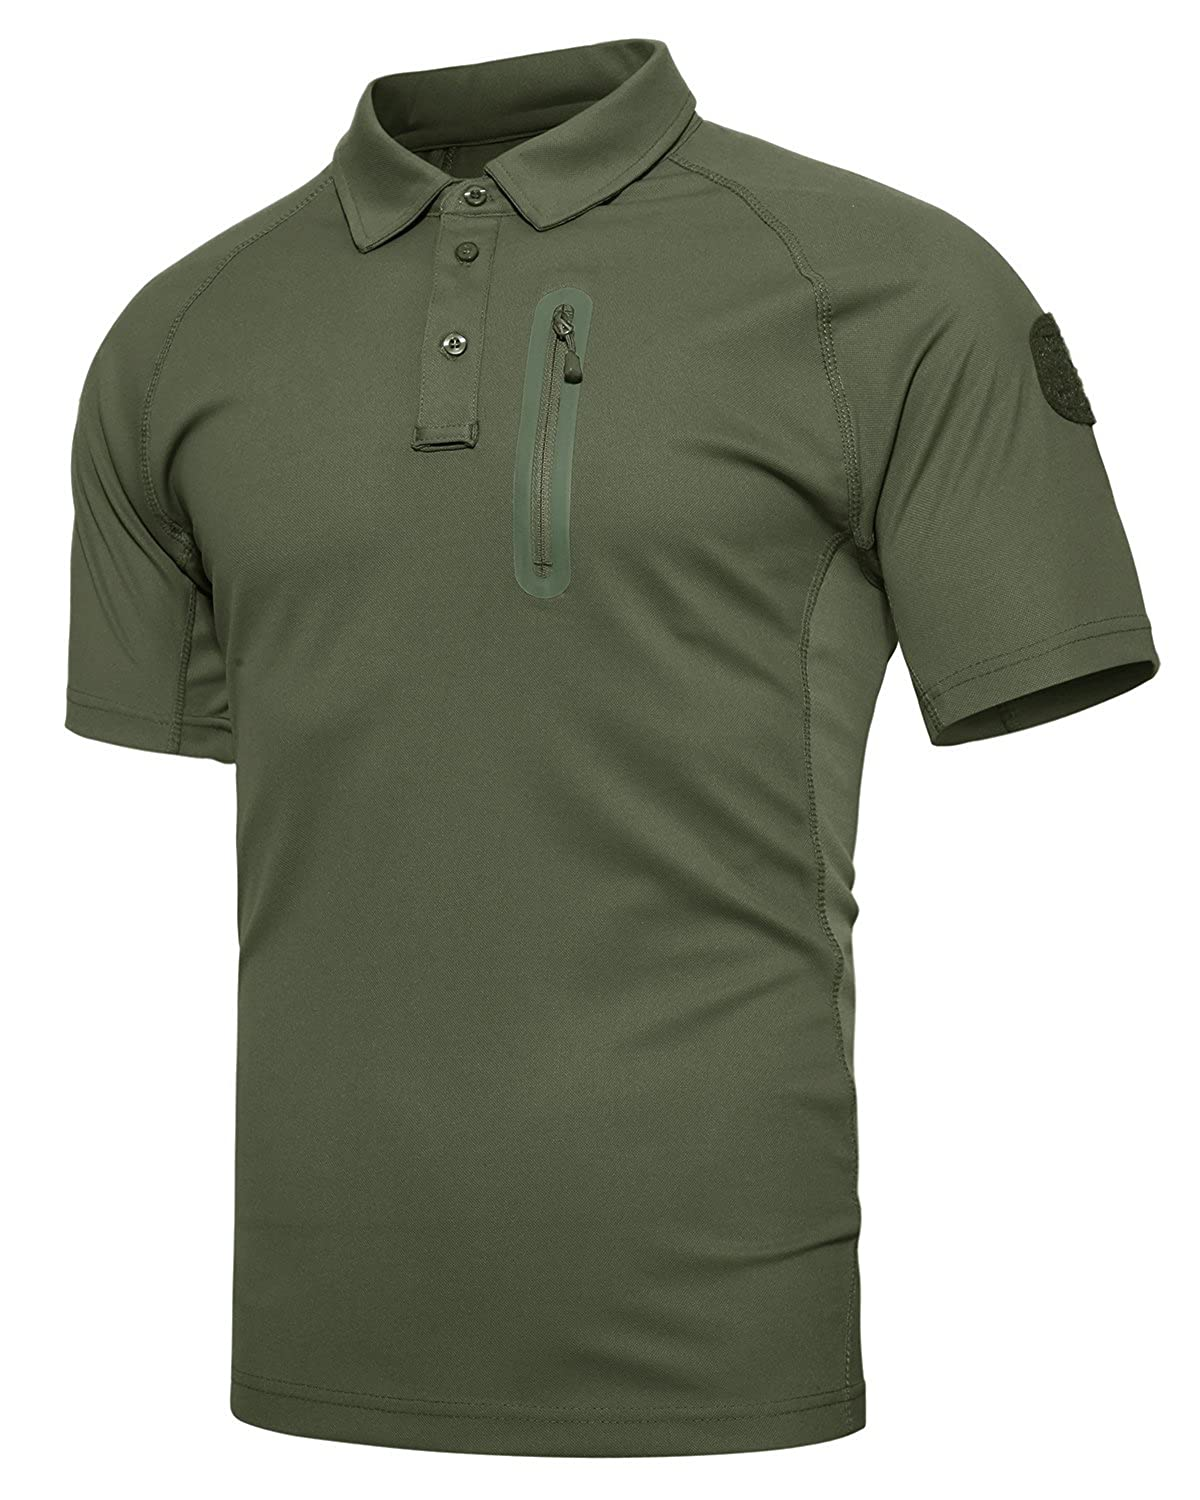 a608ce75f82 Style  Regular fit short sleeve military polo t shirt with raglan sleeve